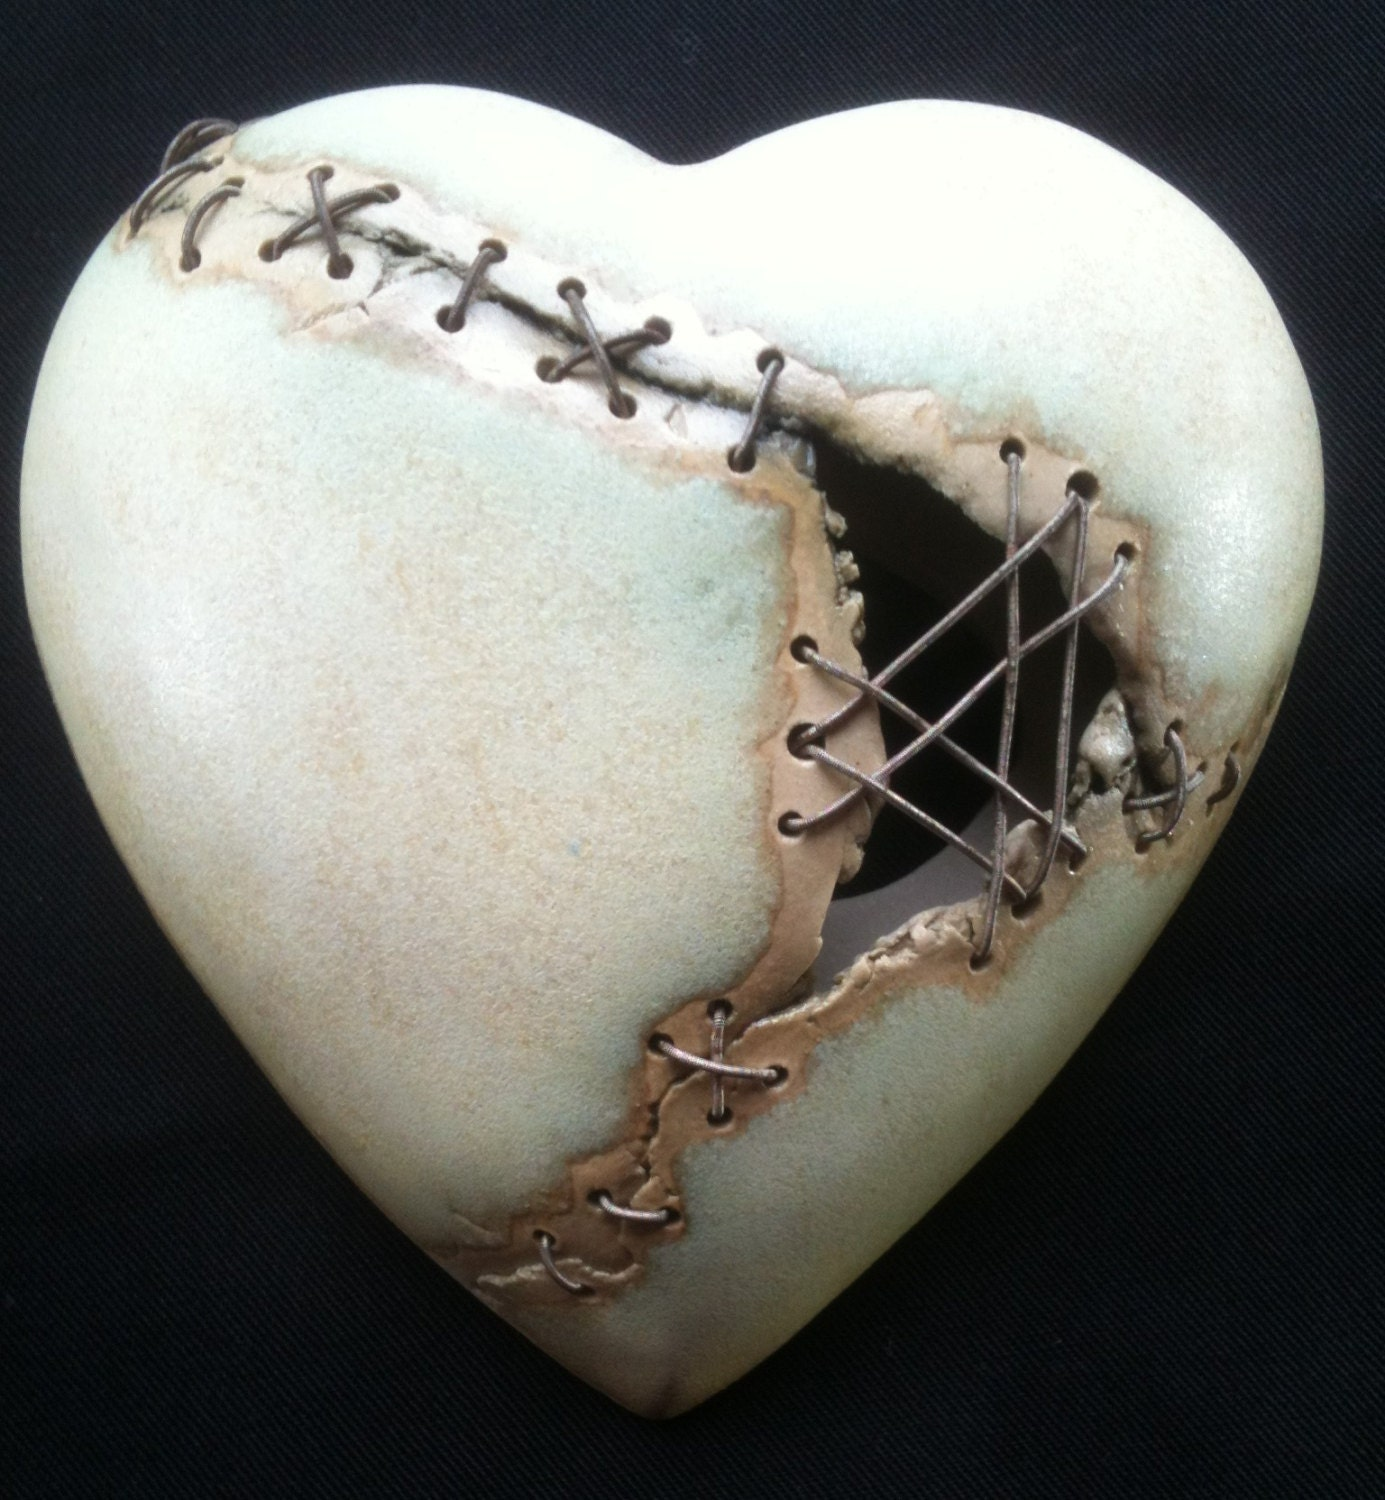 Valentines Heart Wall Plaque Ceramic Stiched With Wire Yellow